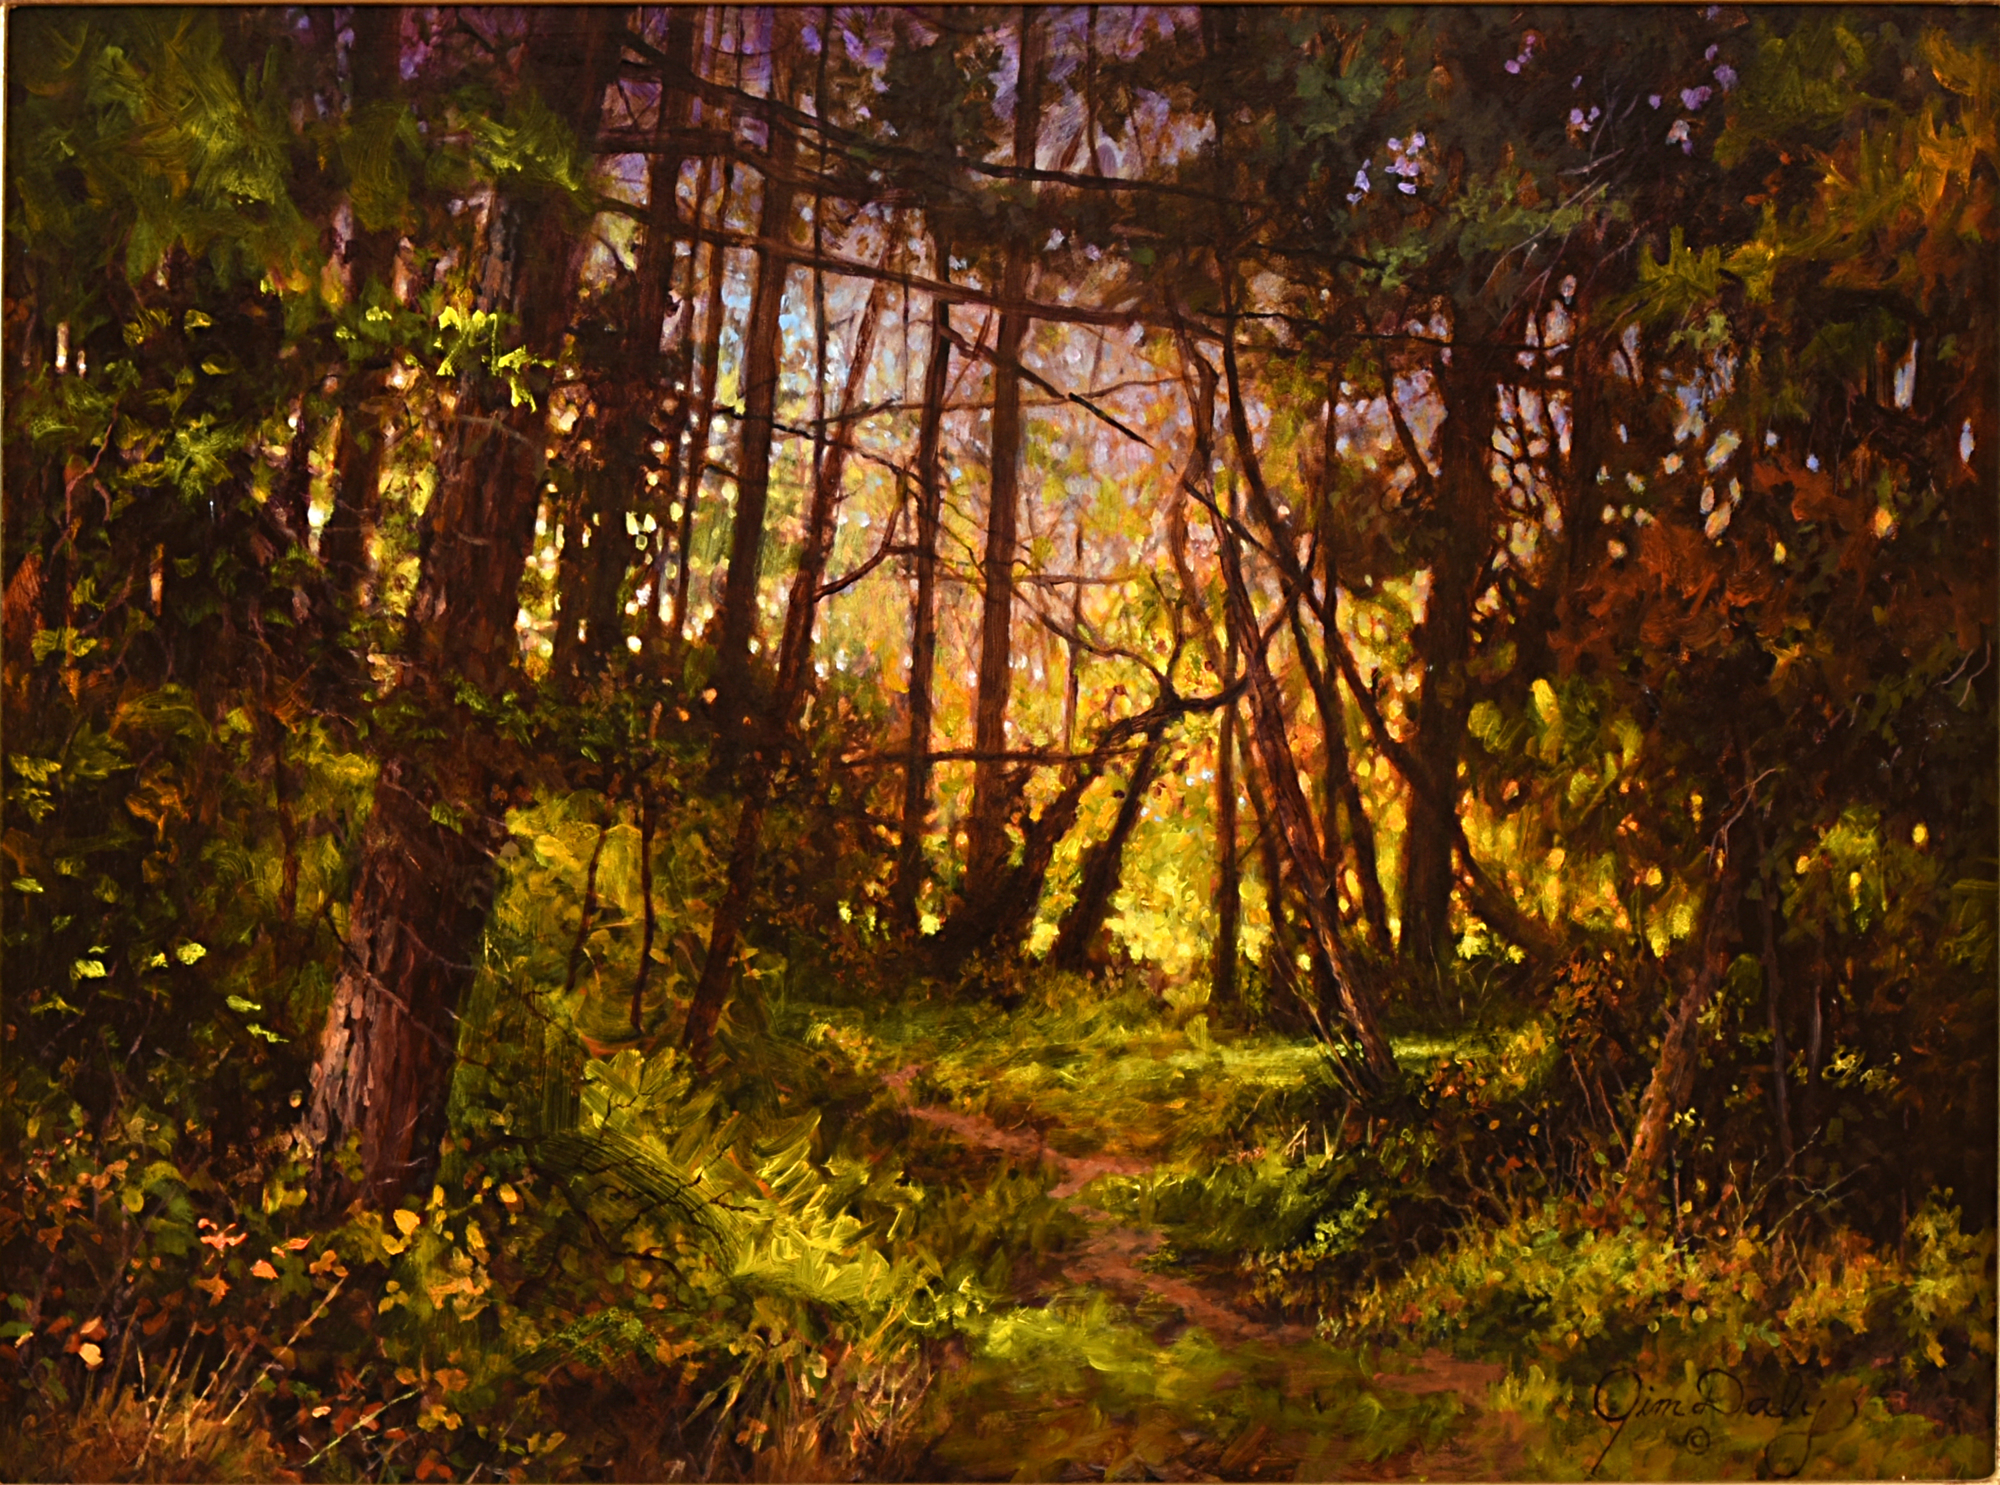 Into the Woods by Jim Daly